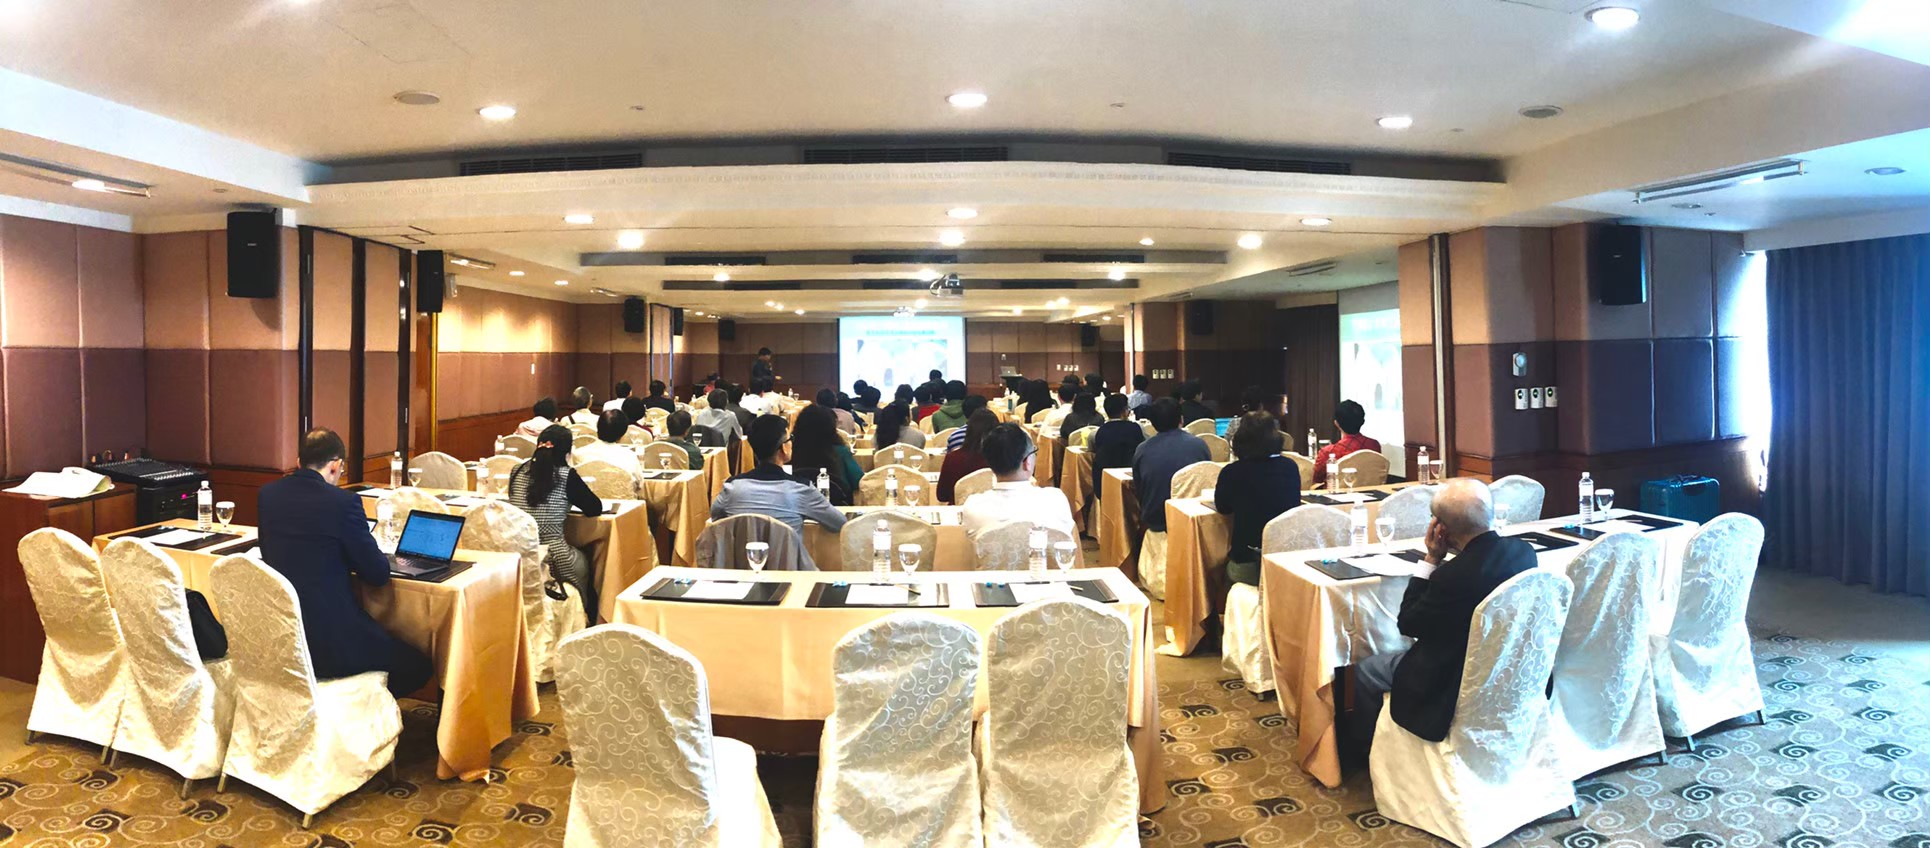 111 Dermatologists were present at our New Era of Atopic Dermatitis Management Symposium in Kaohsiung on Mar 17, 2019